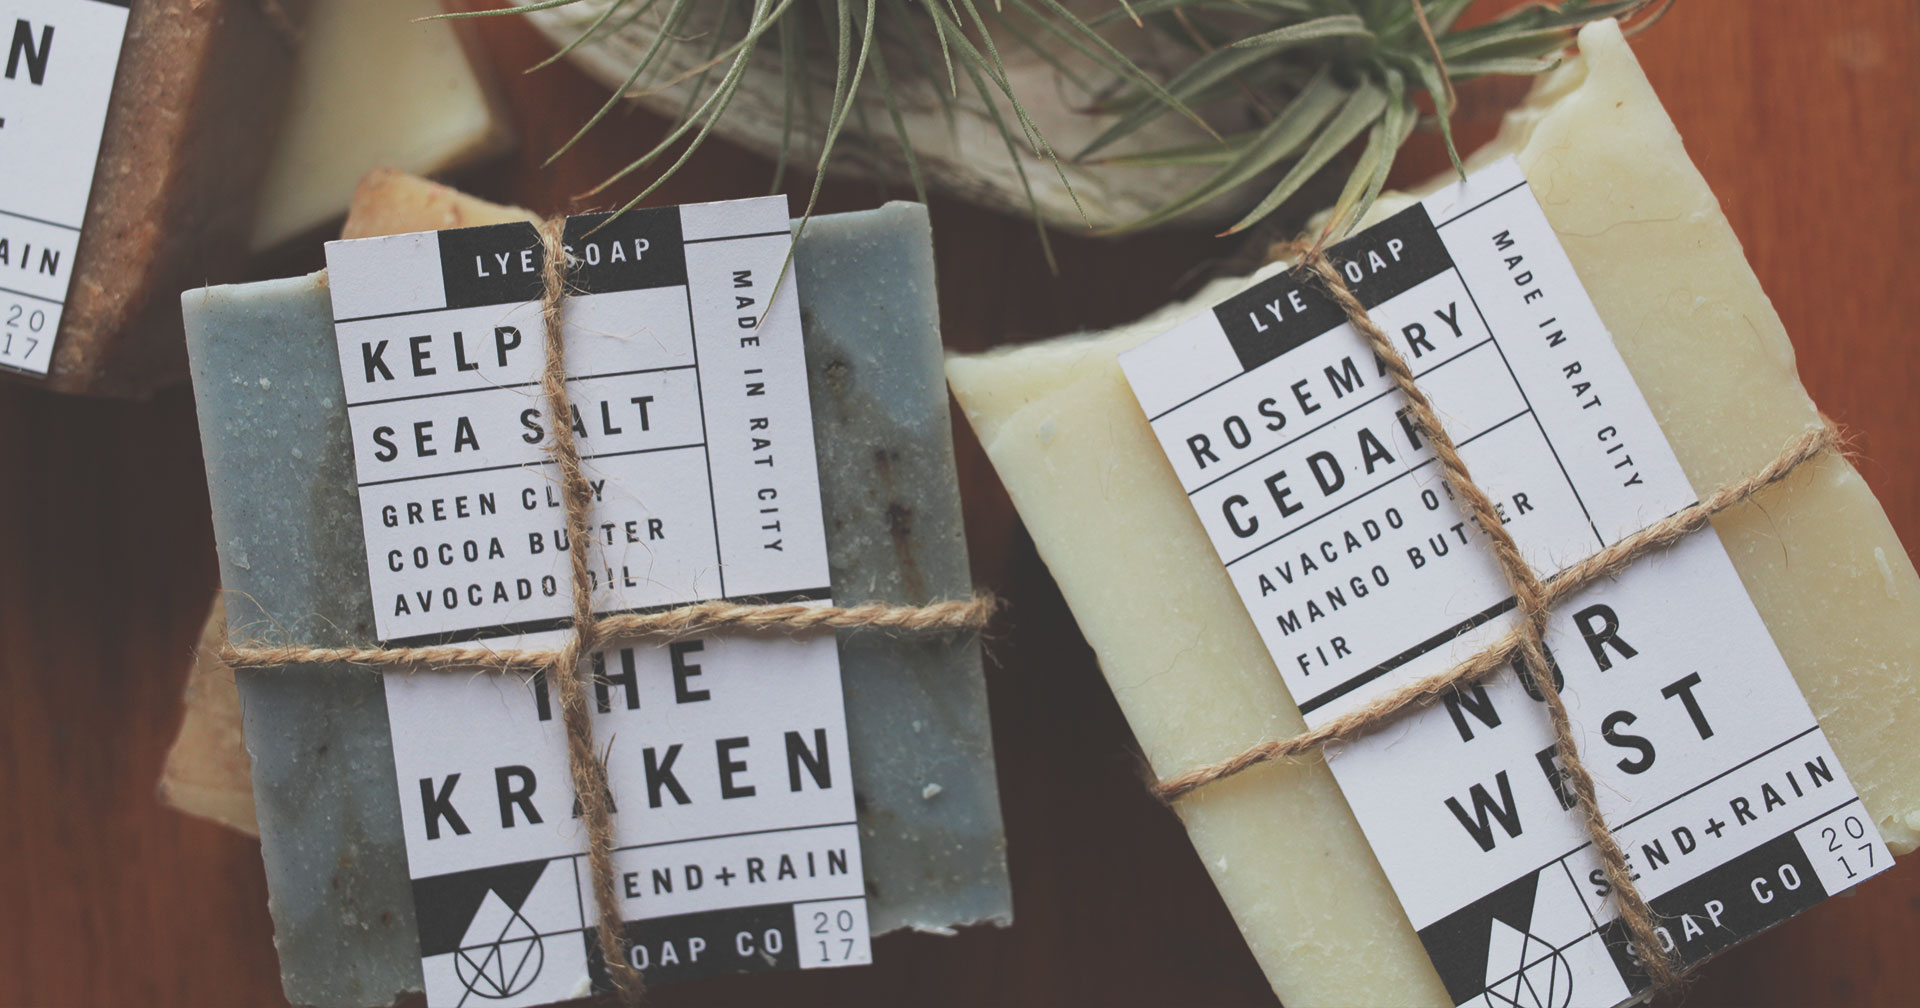 Send Rain soap company label mockup the group of bars